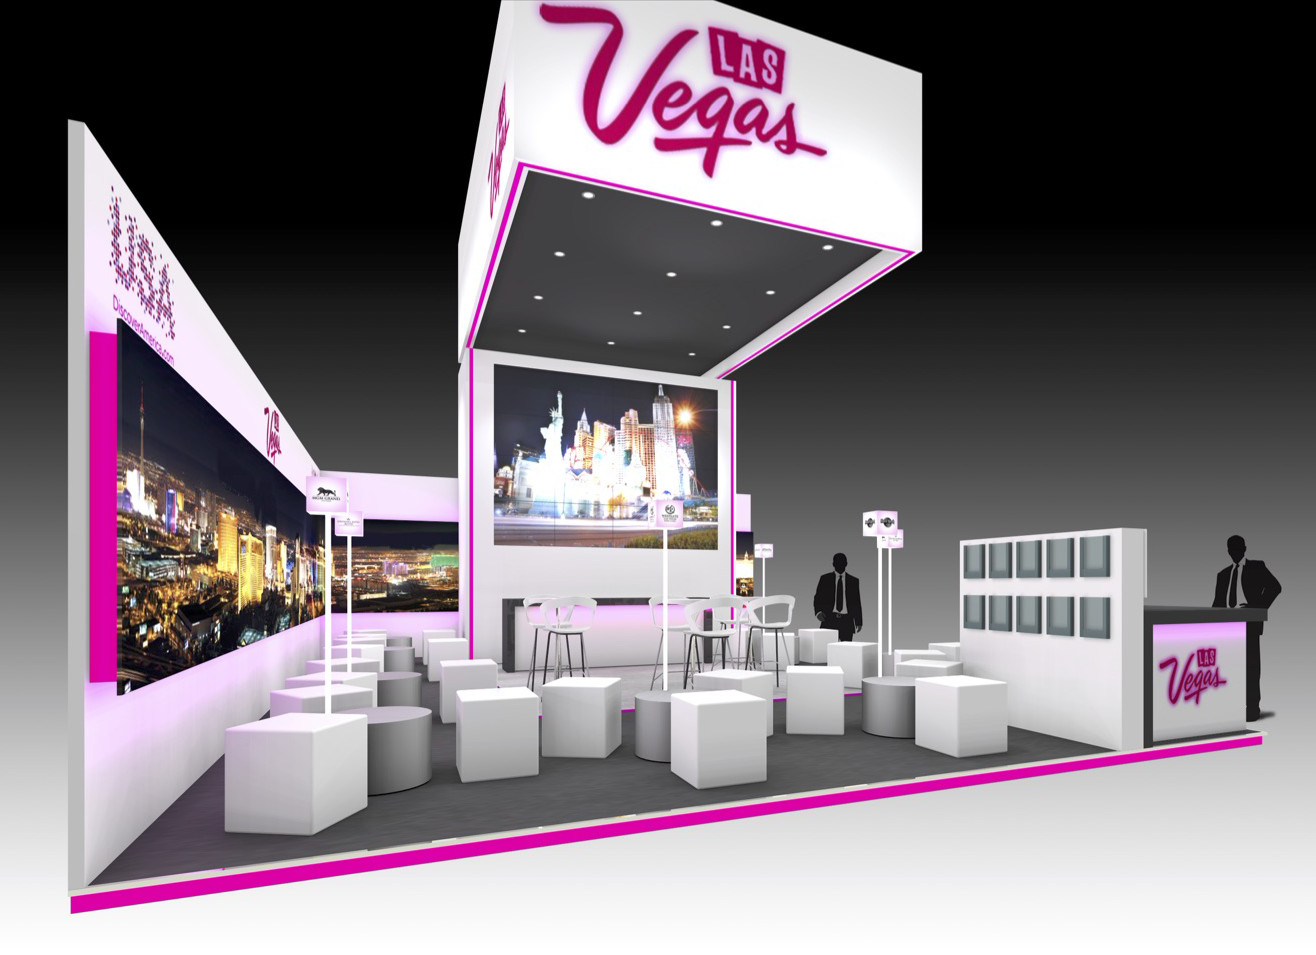 D Exhibition Uk : Las vegas imex cad the ice agency